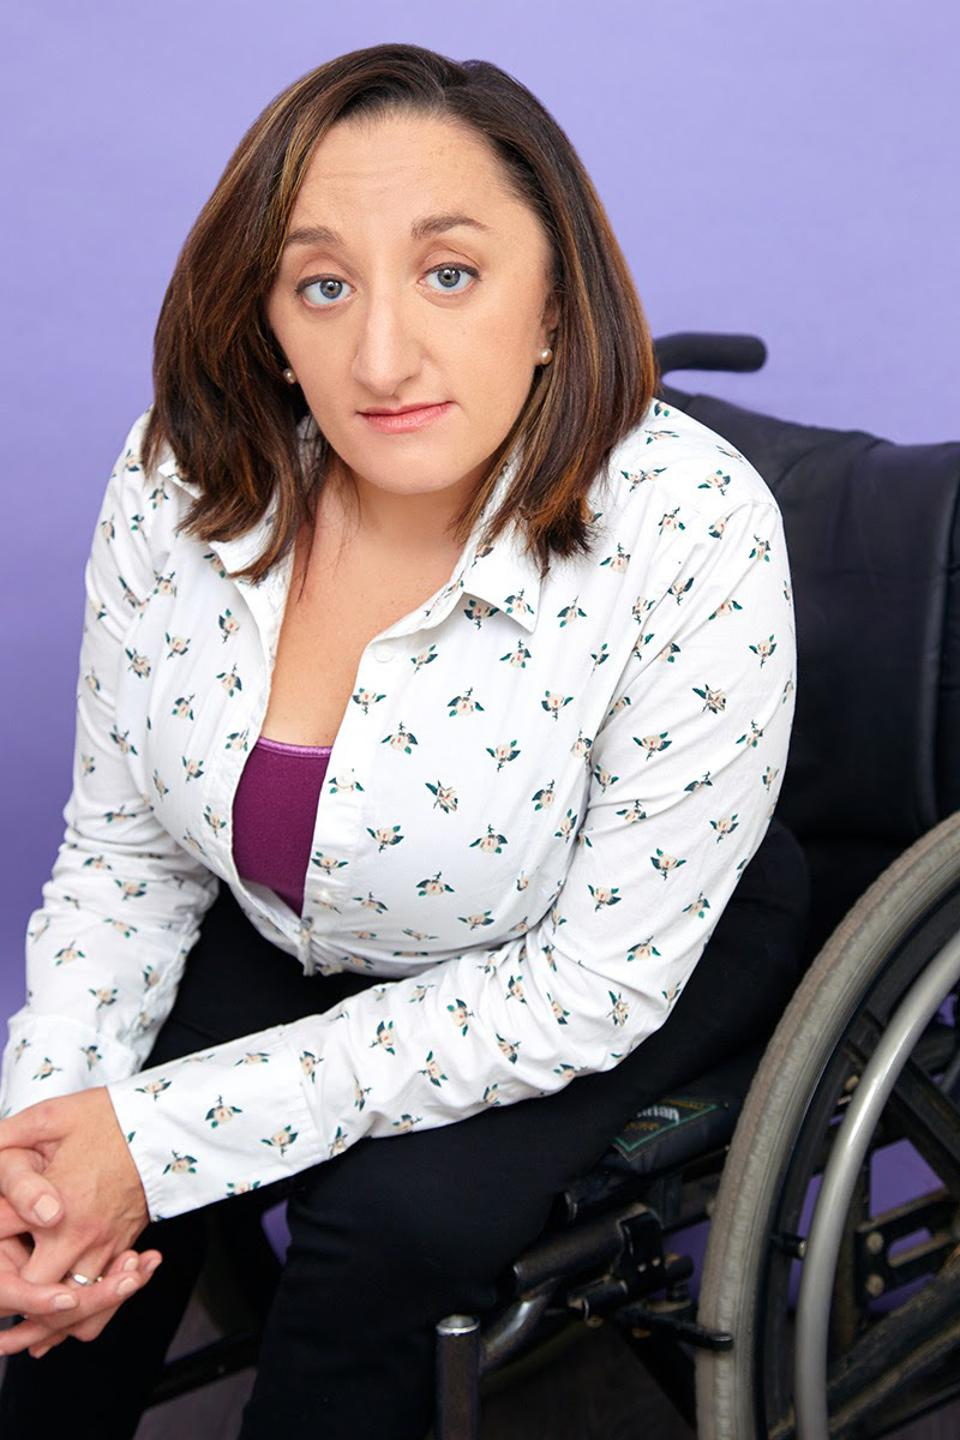 A white woman with brown hair sits in a wheelchair.